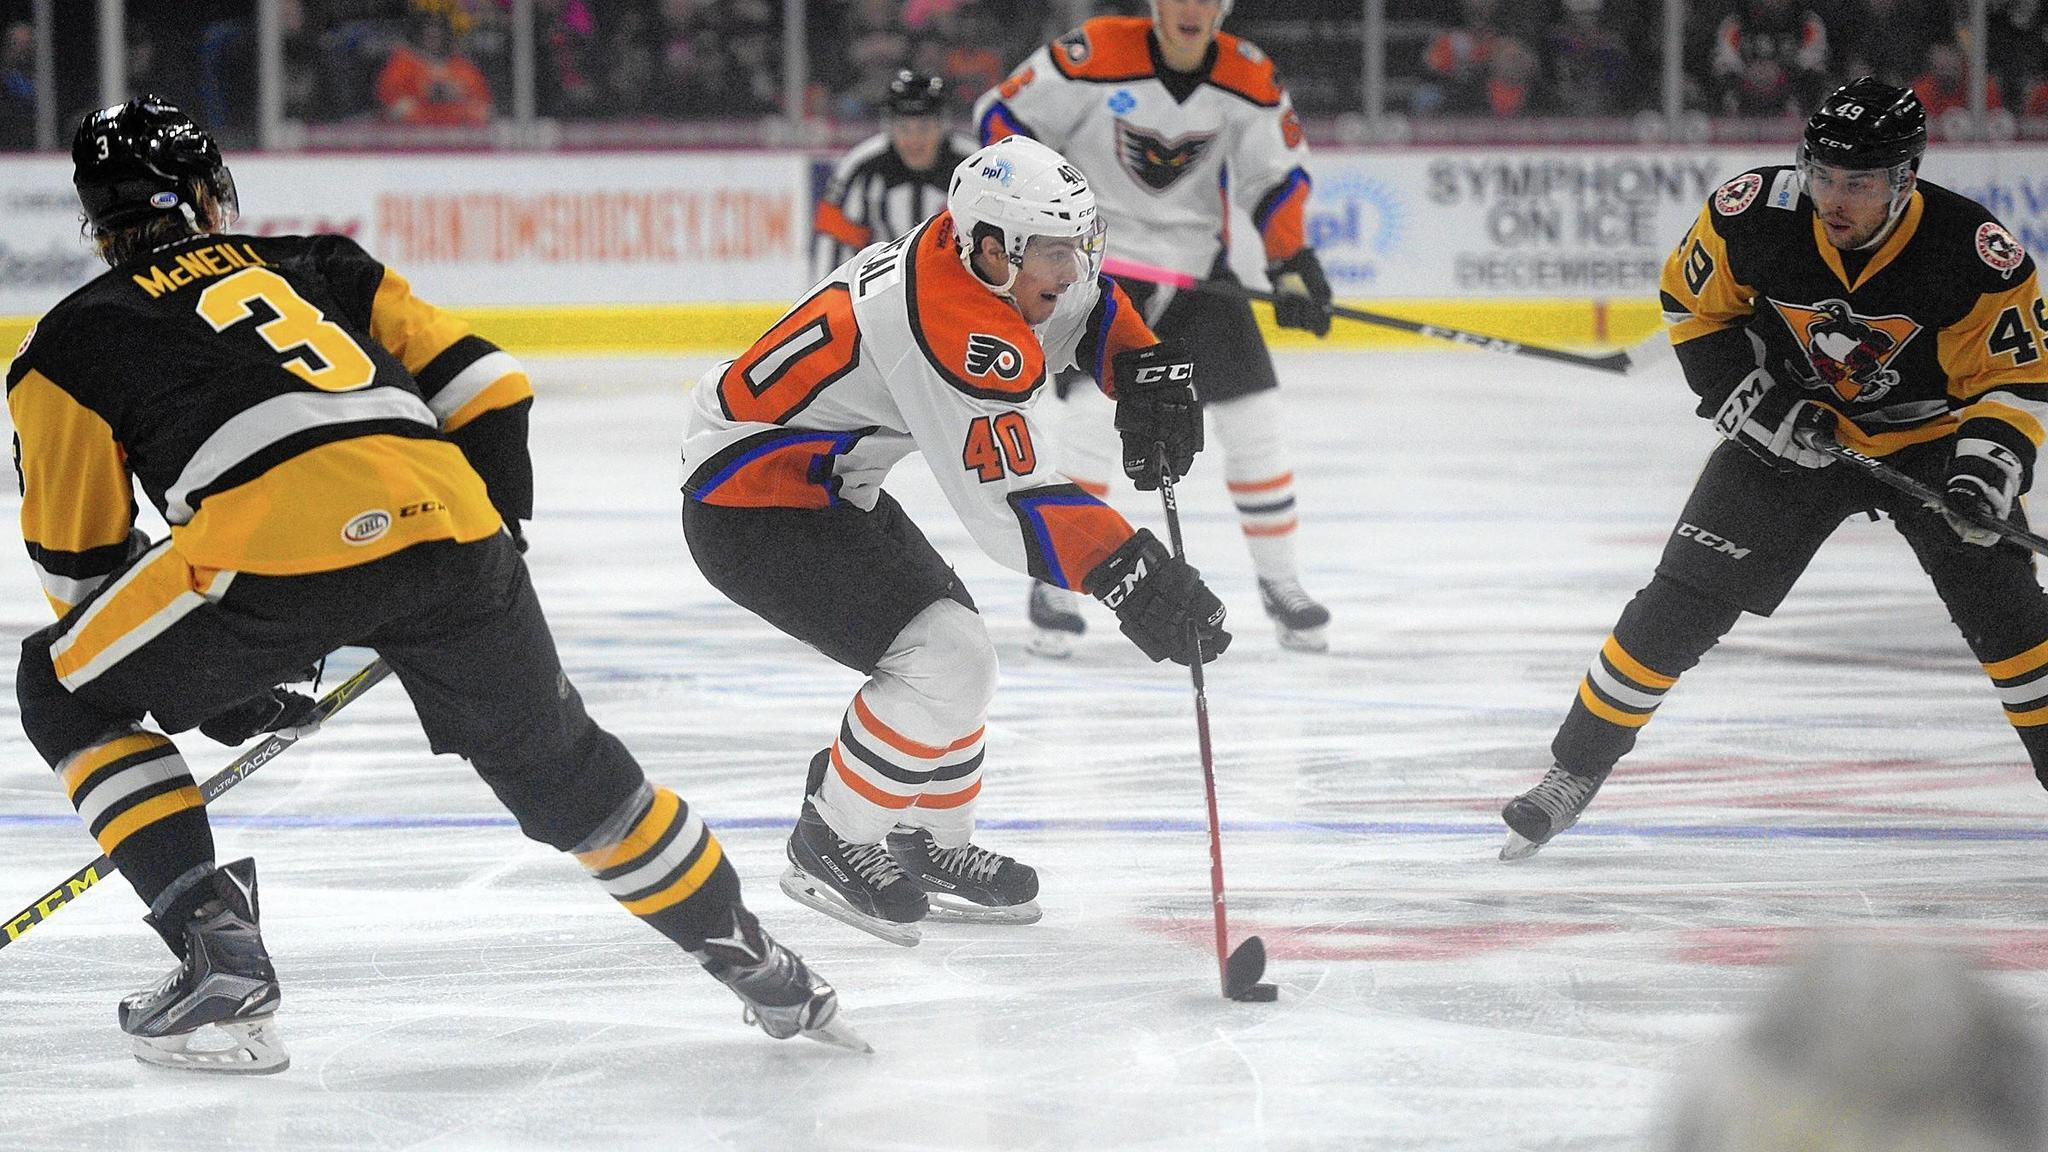 Mc-hershey-phantoms-bears-lehigh-valley-game-1202-20161202